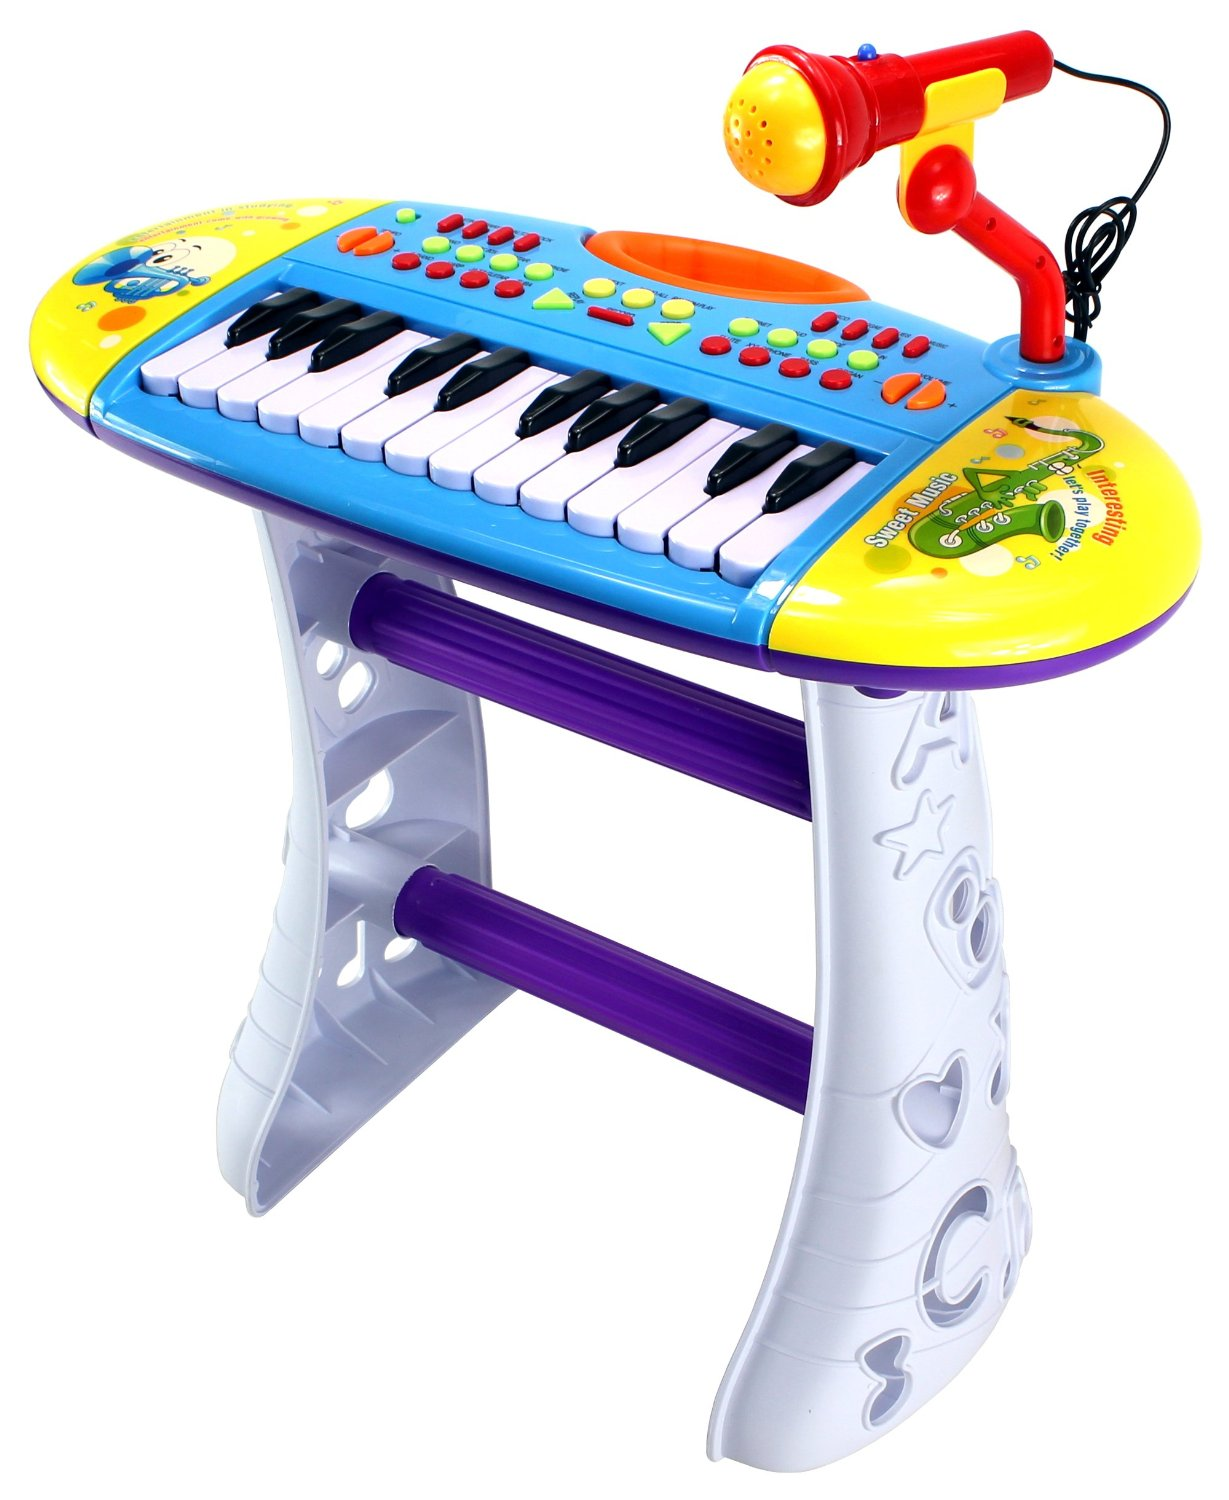 Velocity Toys Portable Fun Piano Children's Musical Instrument Toy Keyboard Playset, 24... by Velocity Toys